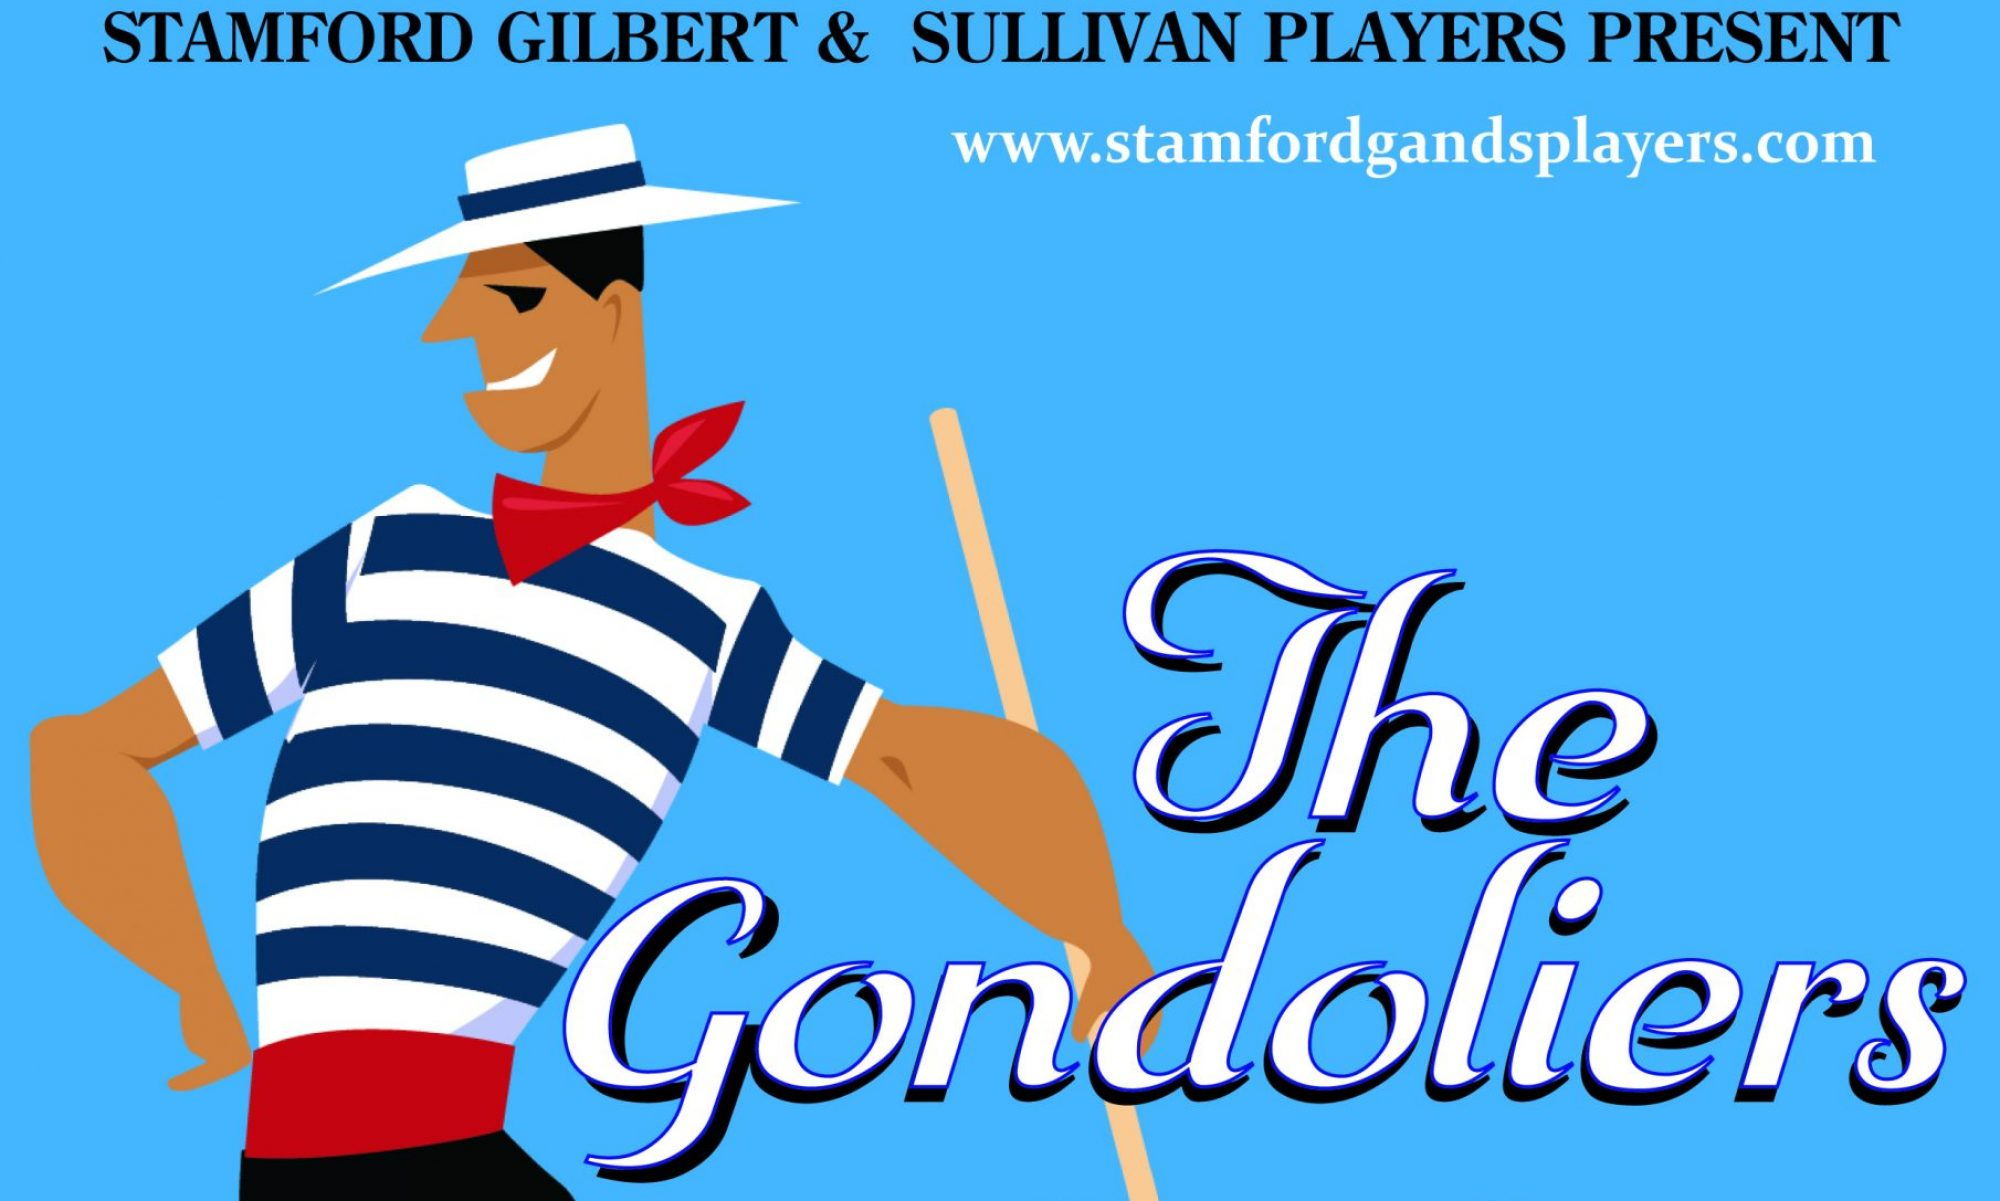 Stamford Gilbert and Sullivan Players